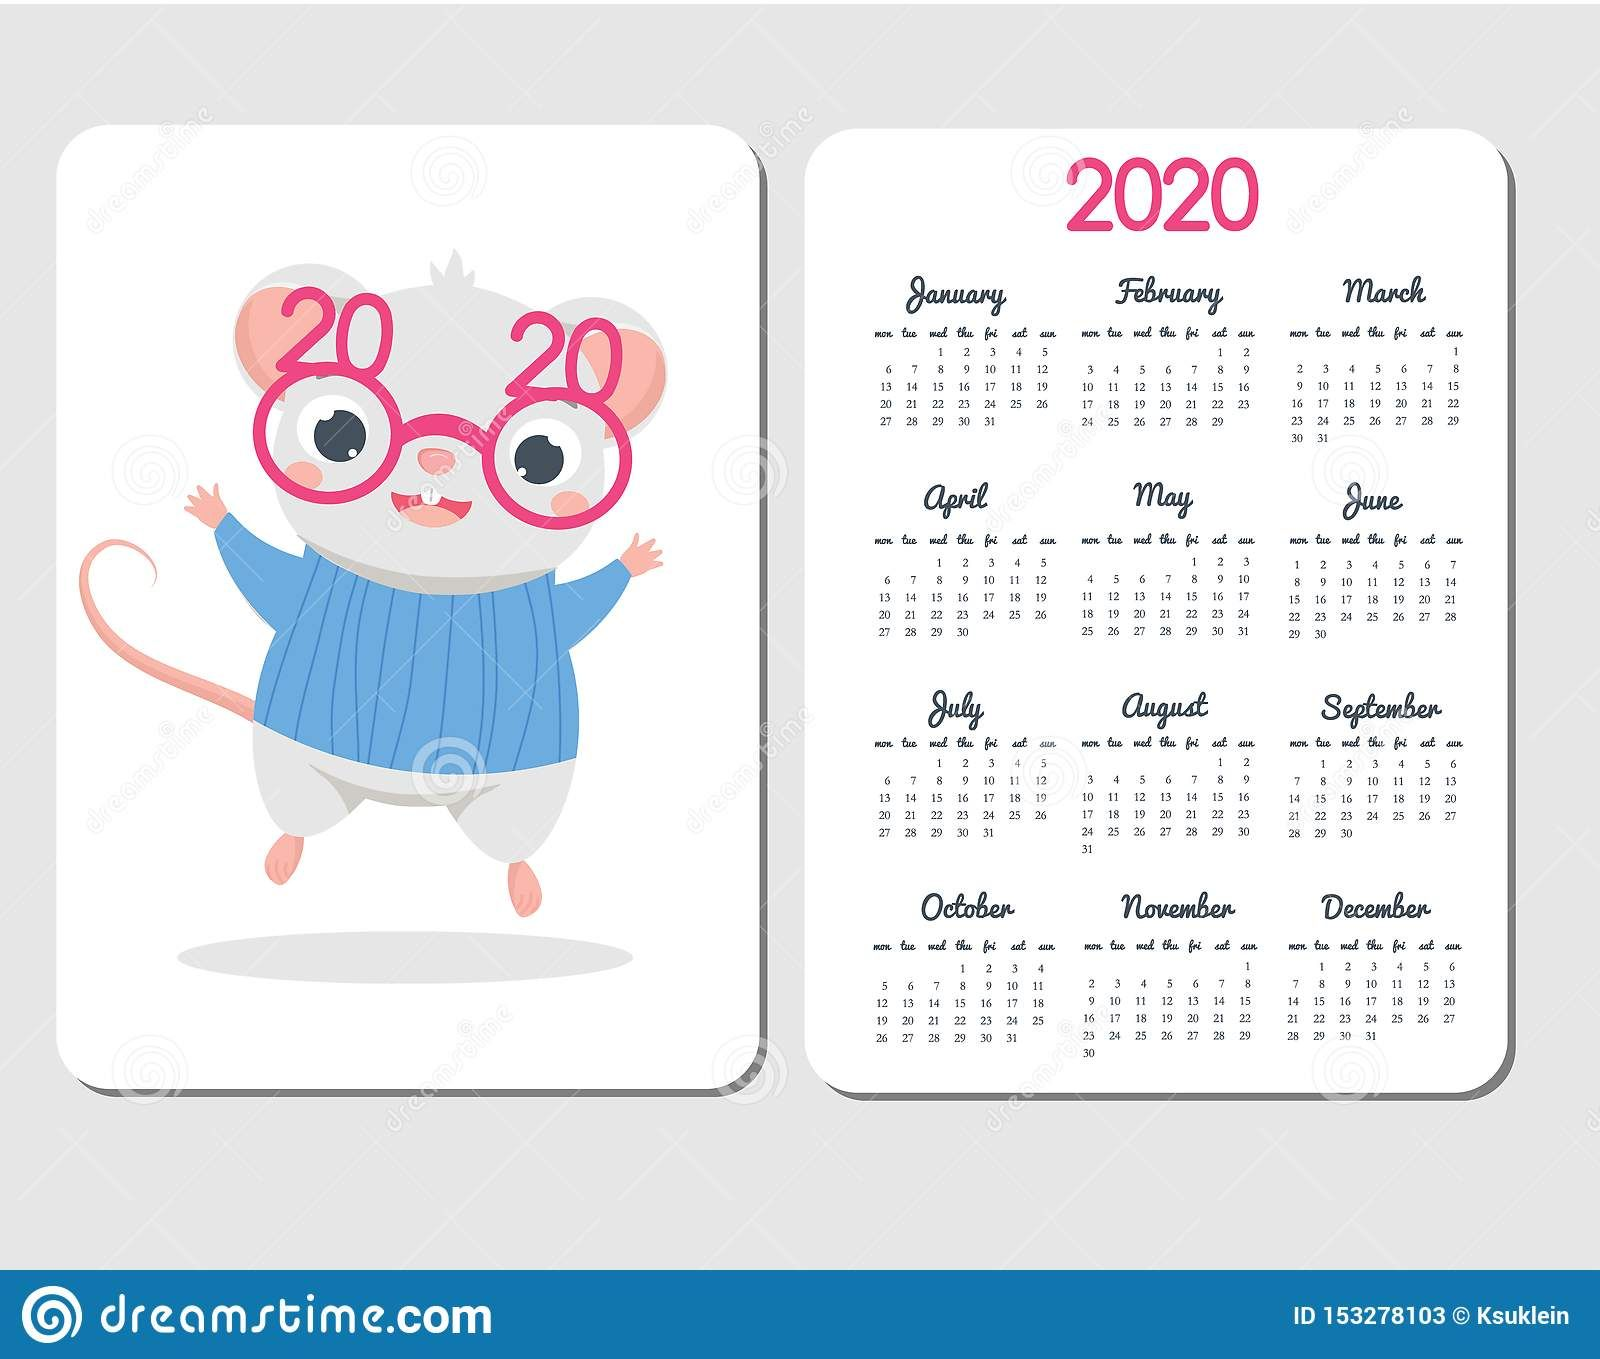 Pin by Dreamstime Stock Photos on Creative Calendar 2020